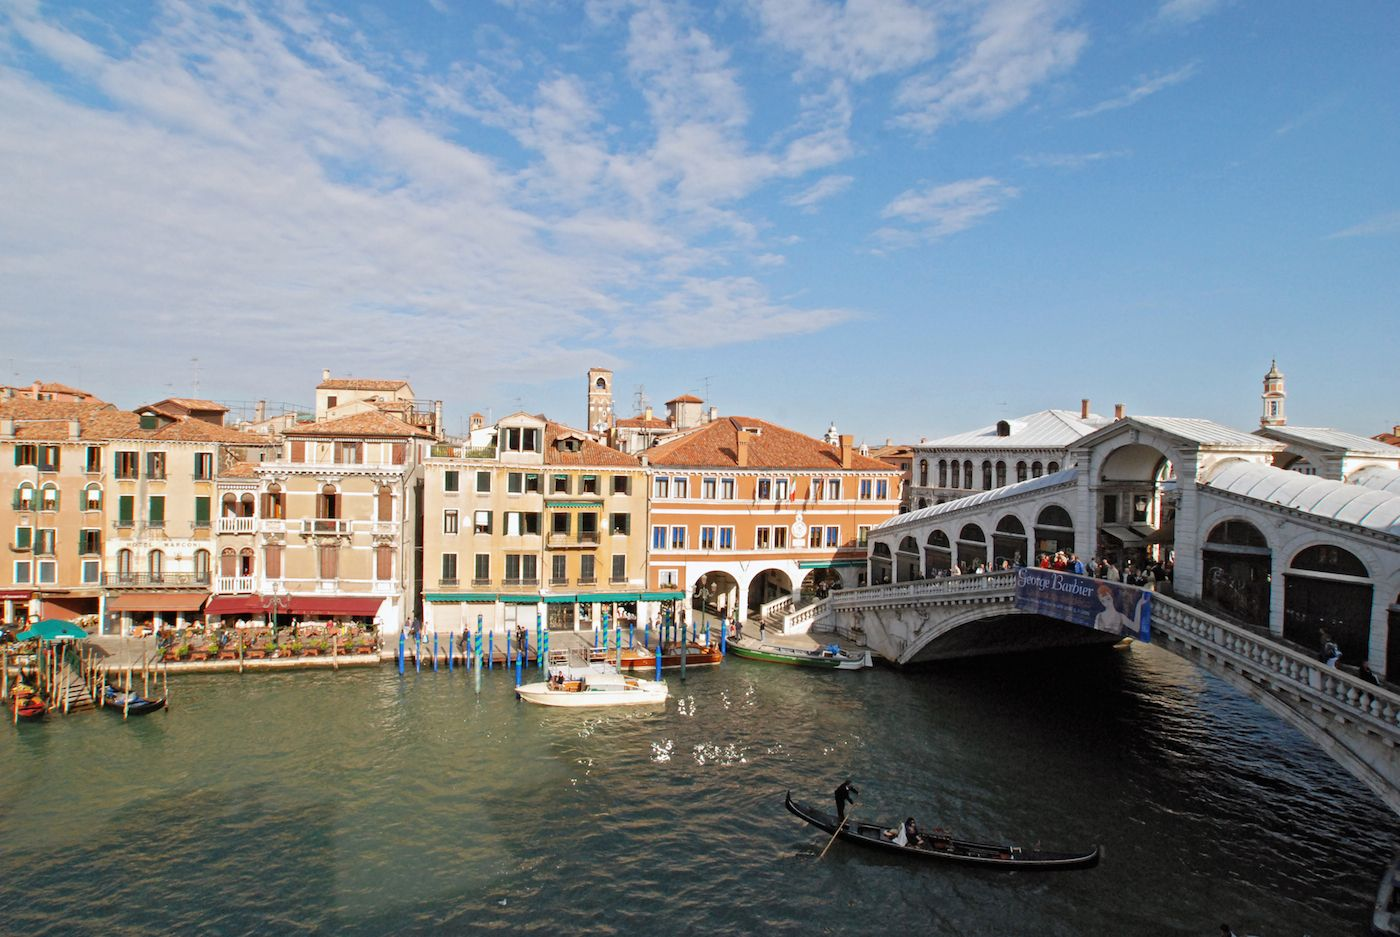 another stunning view of the Rialto Bridge from the living room